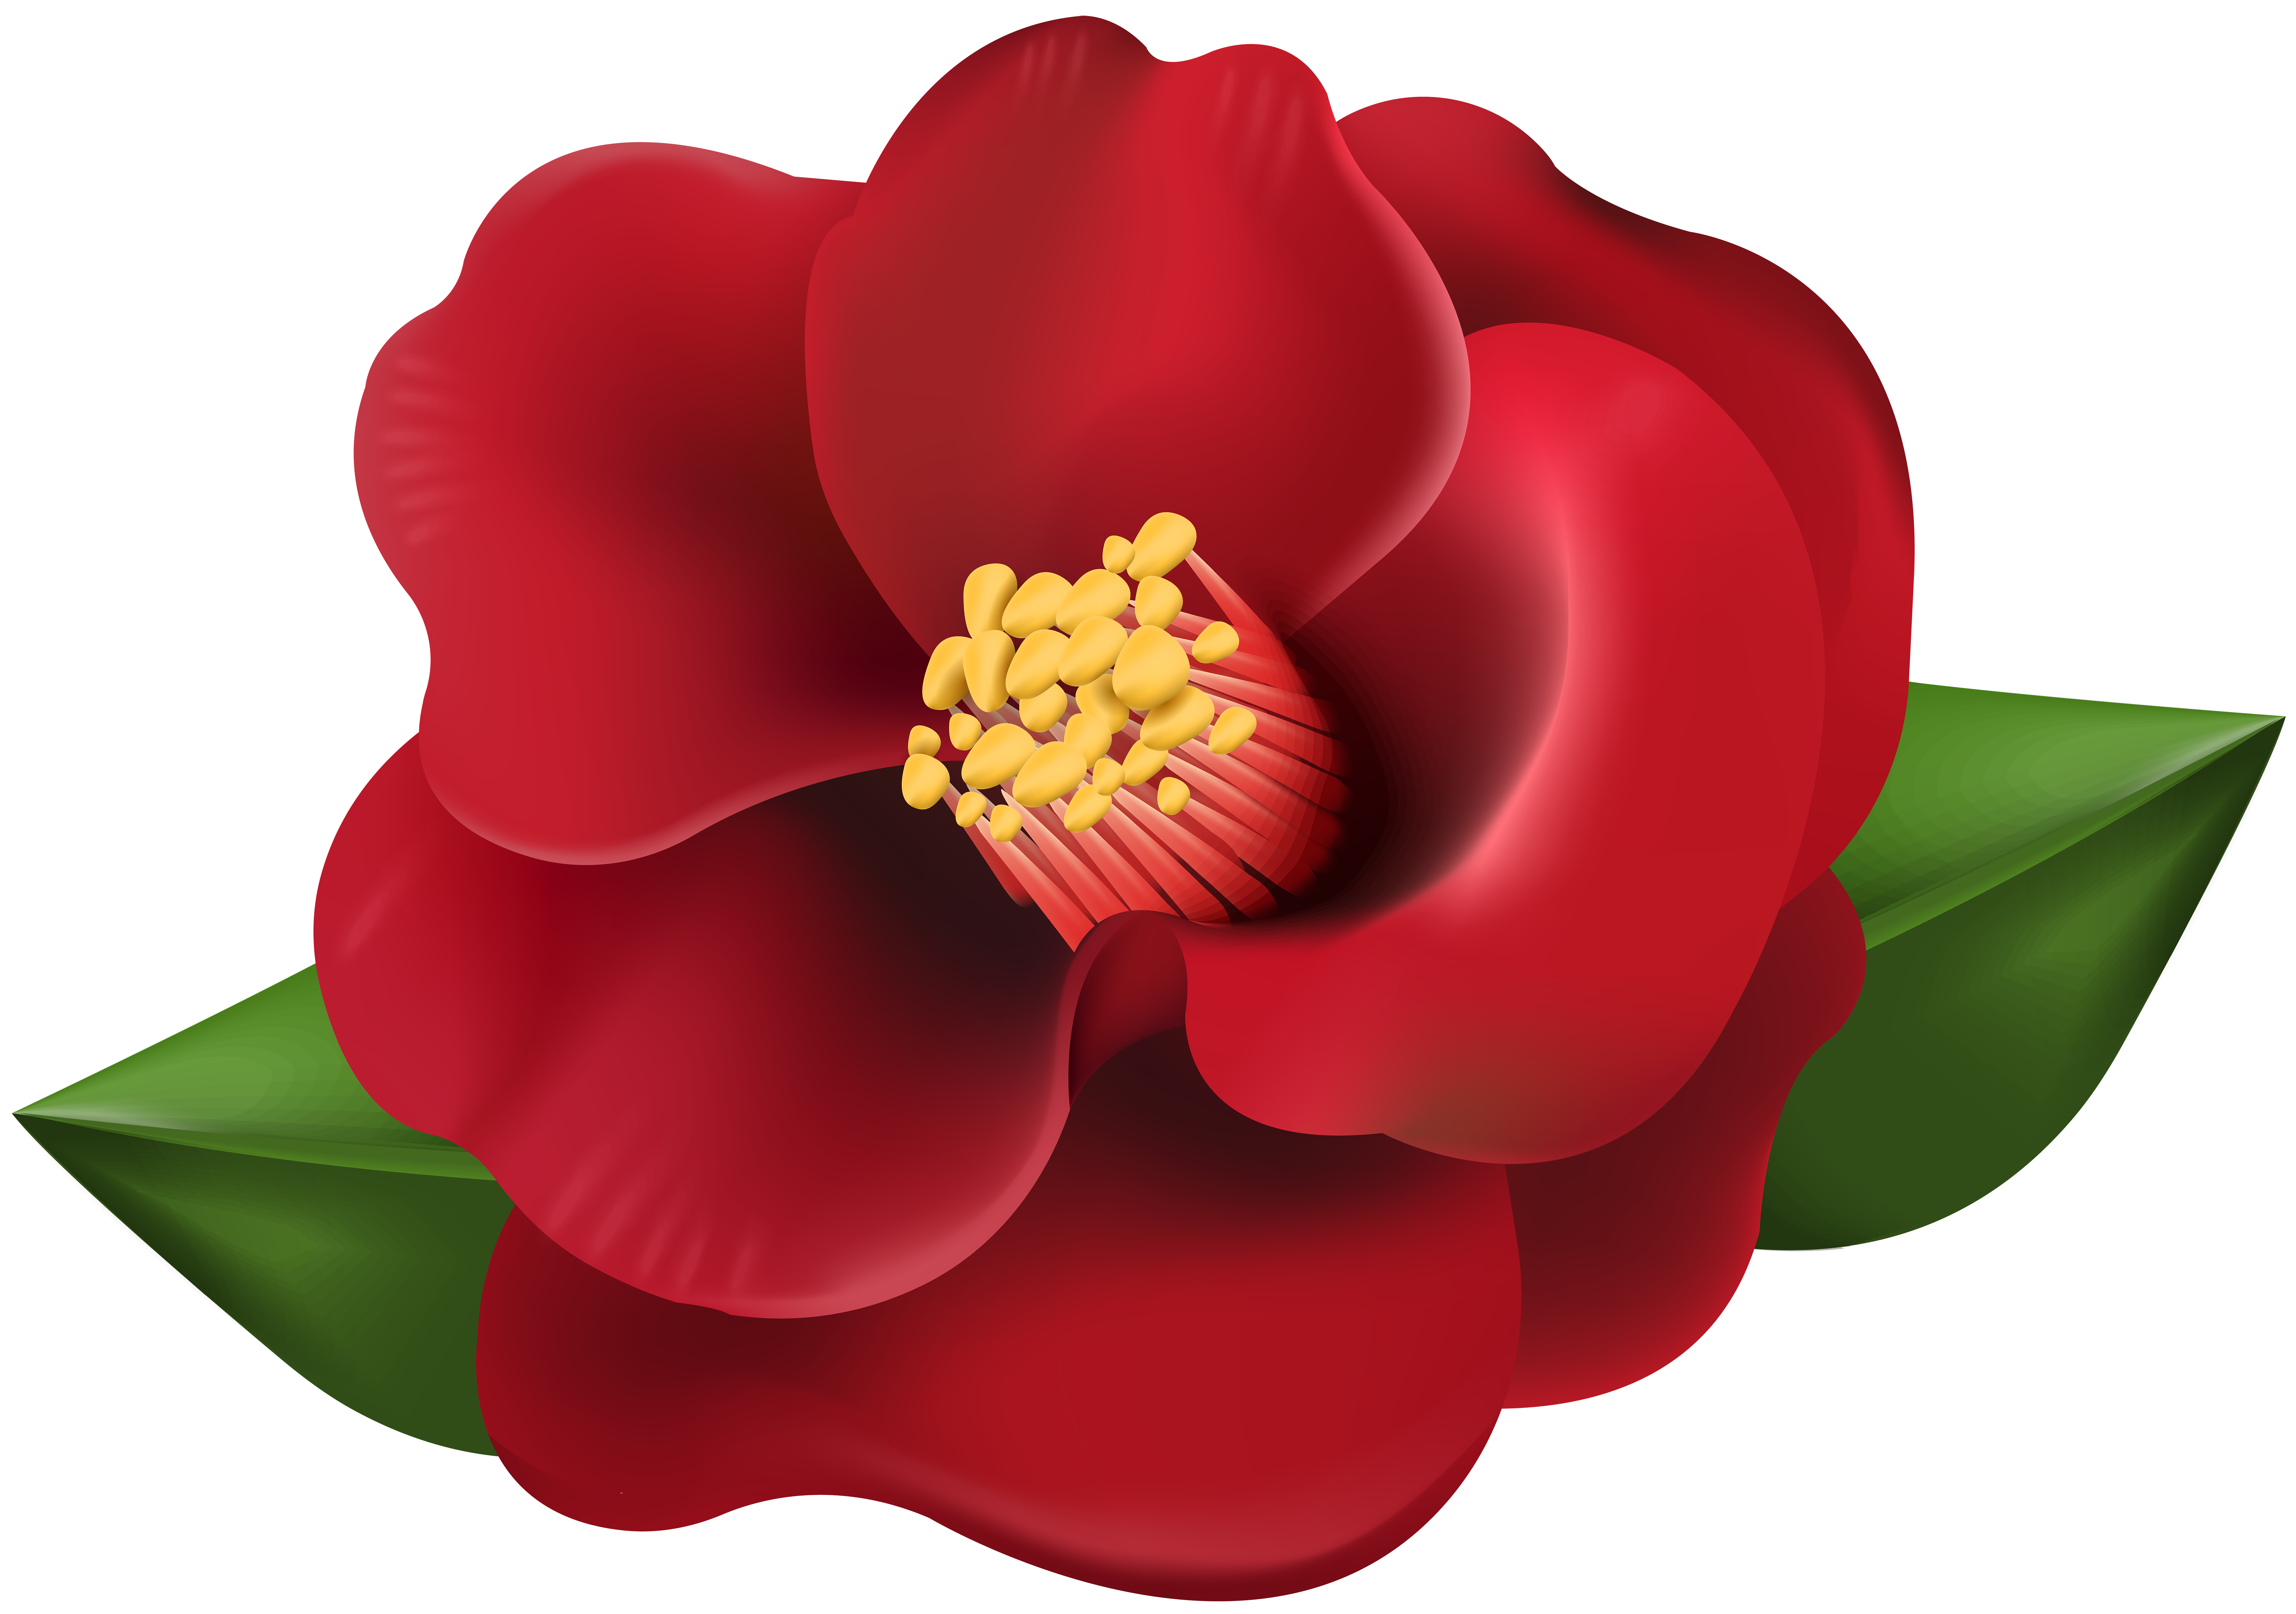 Red Flower Transparent Image   Gallery Yopriceville - High-Quality ... free download